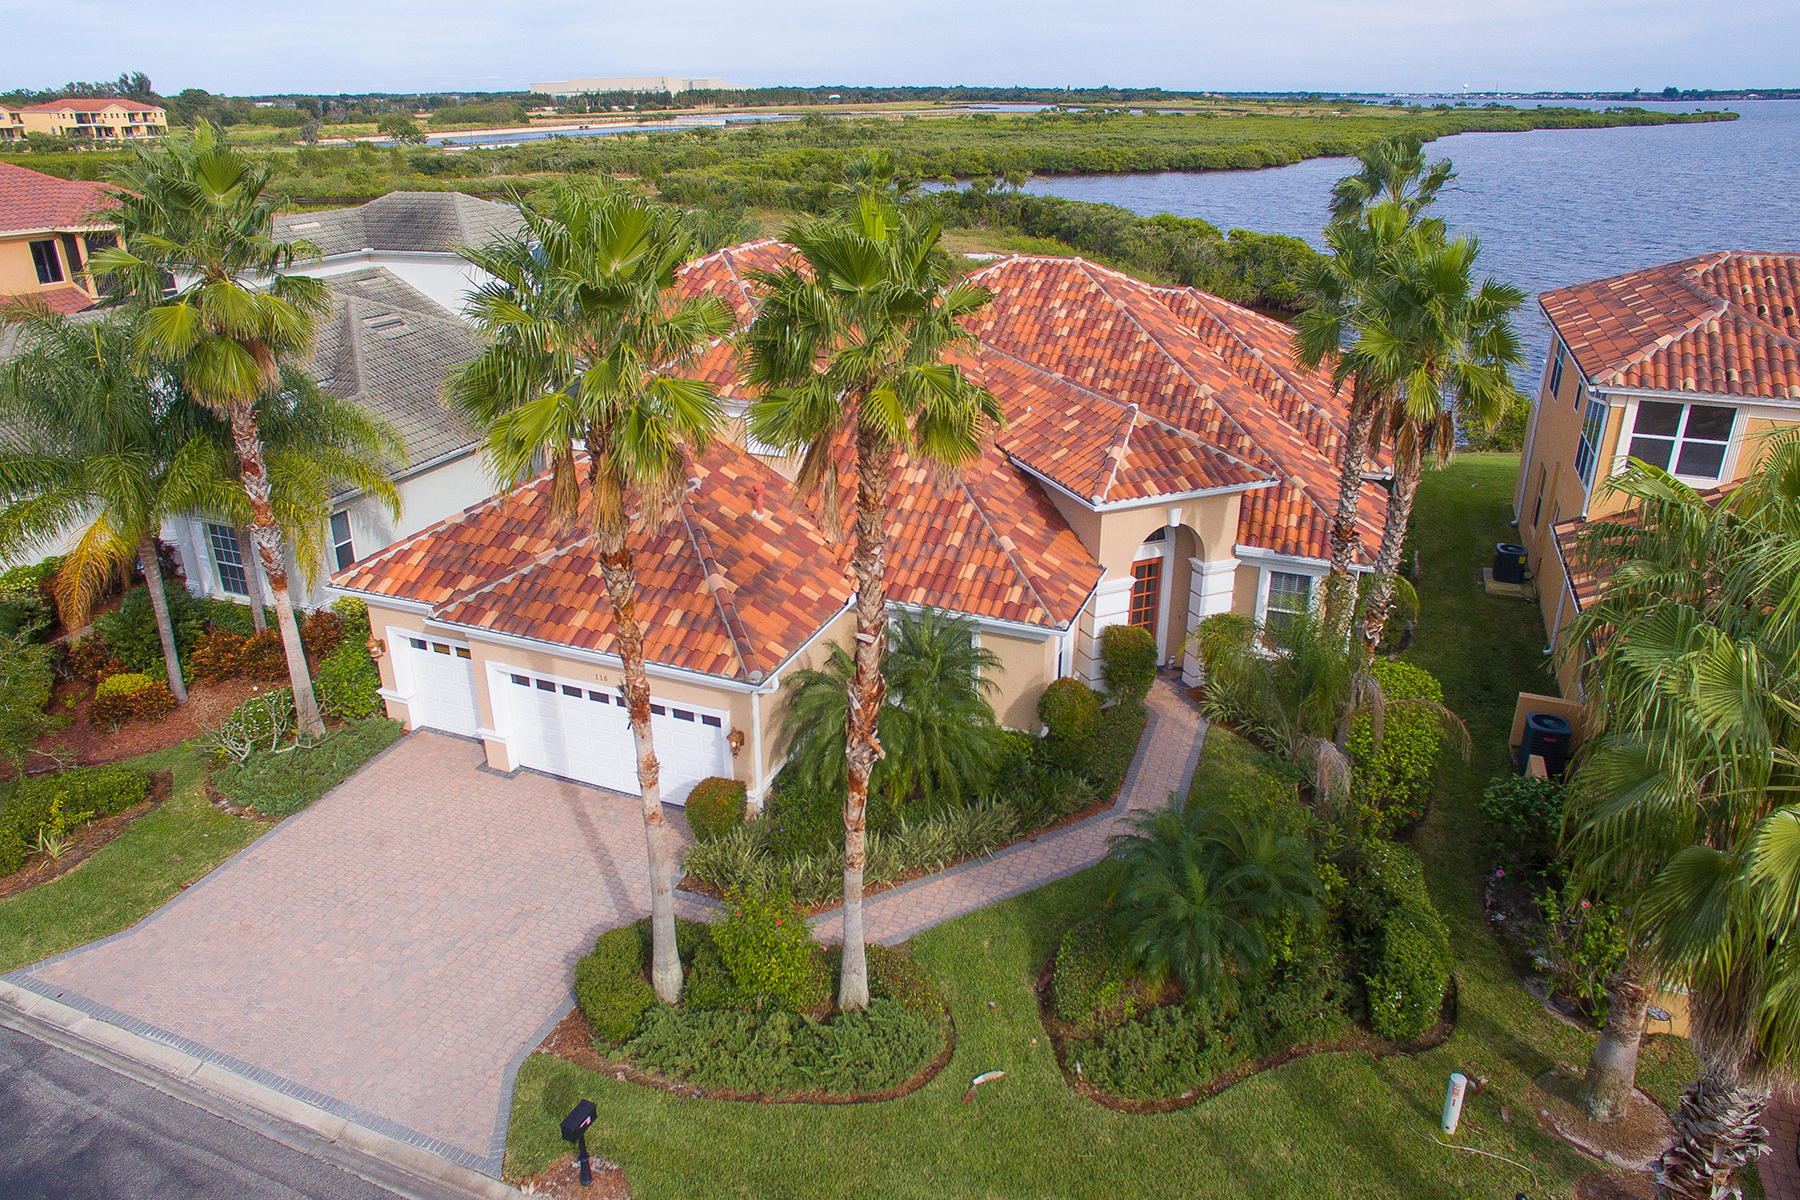 Single Family Home for Sale at PENINSULA RIVIERA DUNES 116 12th Ave E Palmetto, Florida, 34221 United States